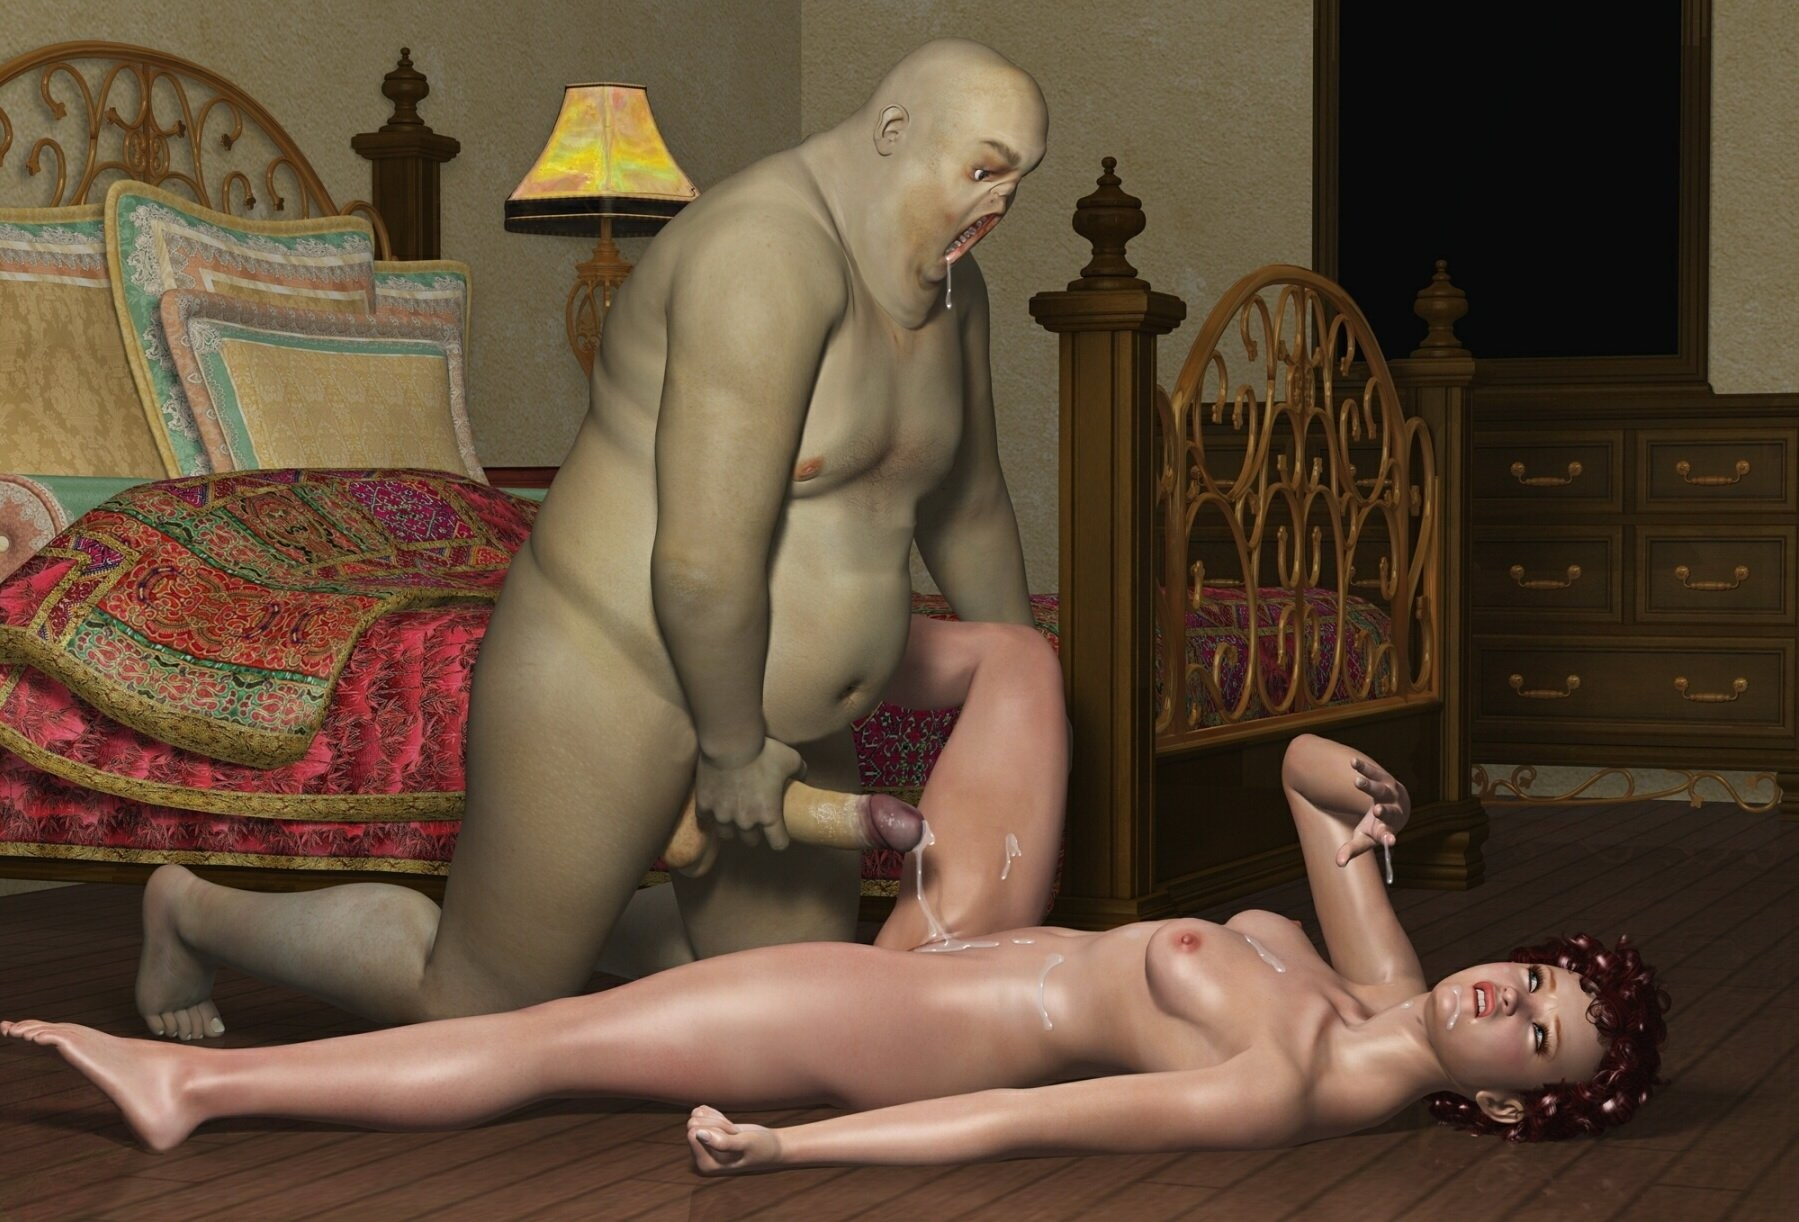 Monsters sex videos xxx3d sexy image